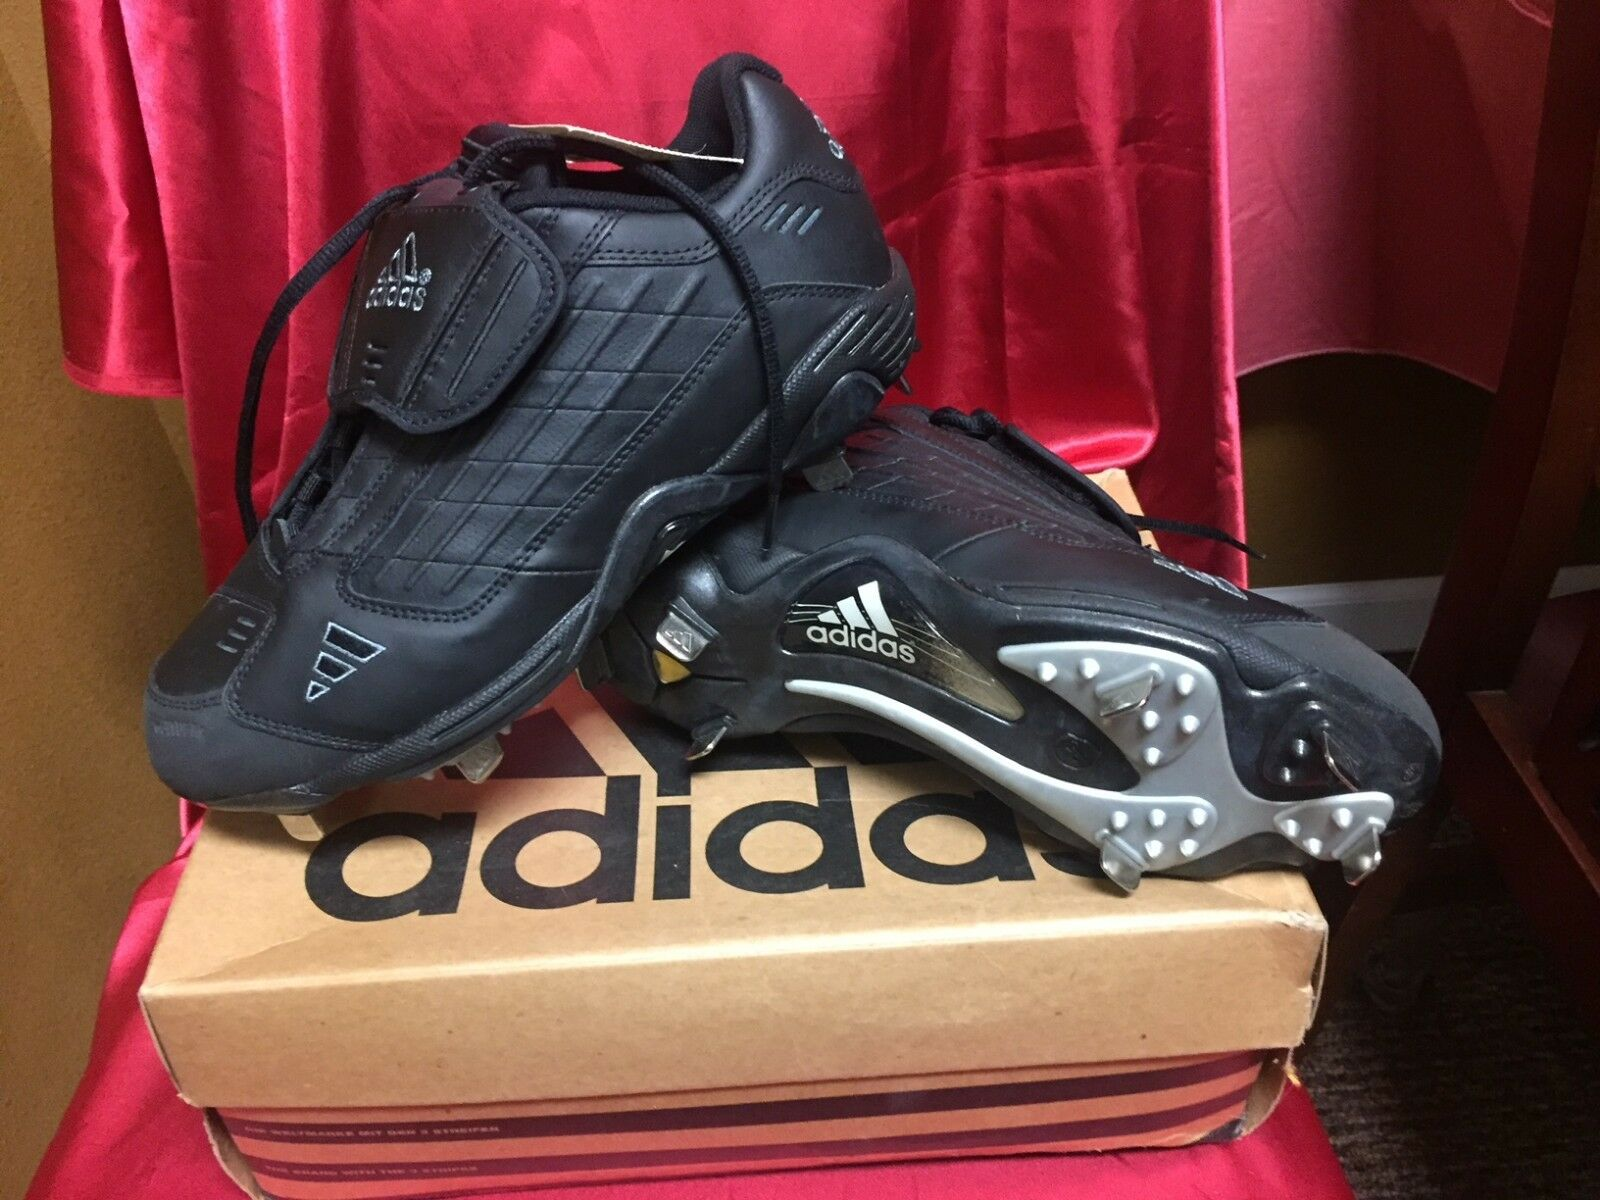 Adidas Baseball Cleats Excelsior Low Men's Size 8D Brand New in Box